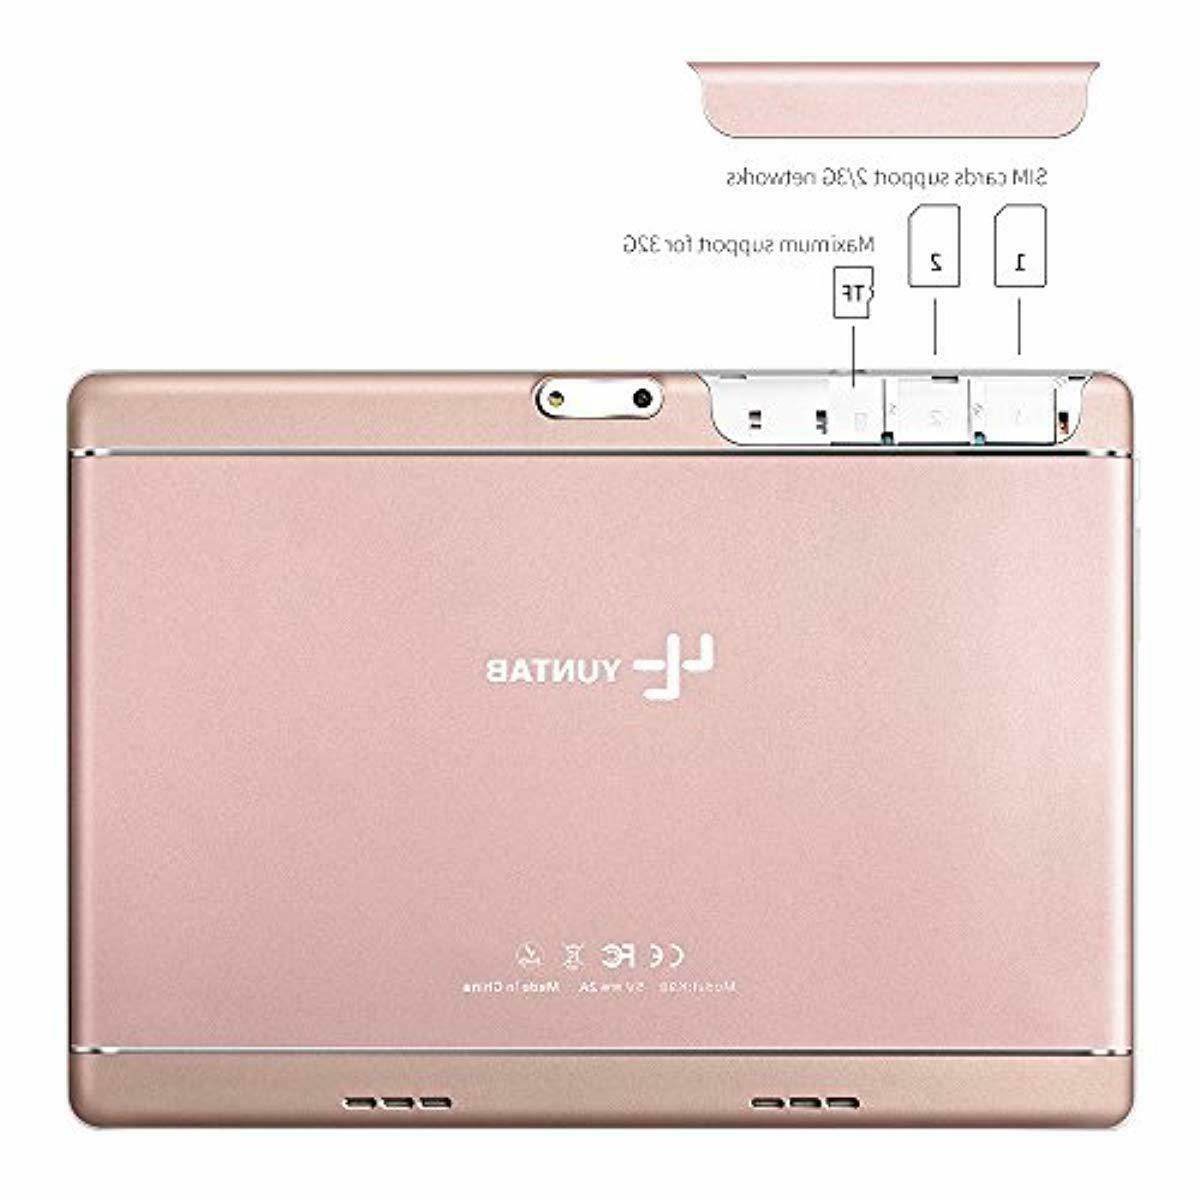 YUNTAB K98 9.6 inch Android Tablet/3G Smart Phone, Dual